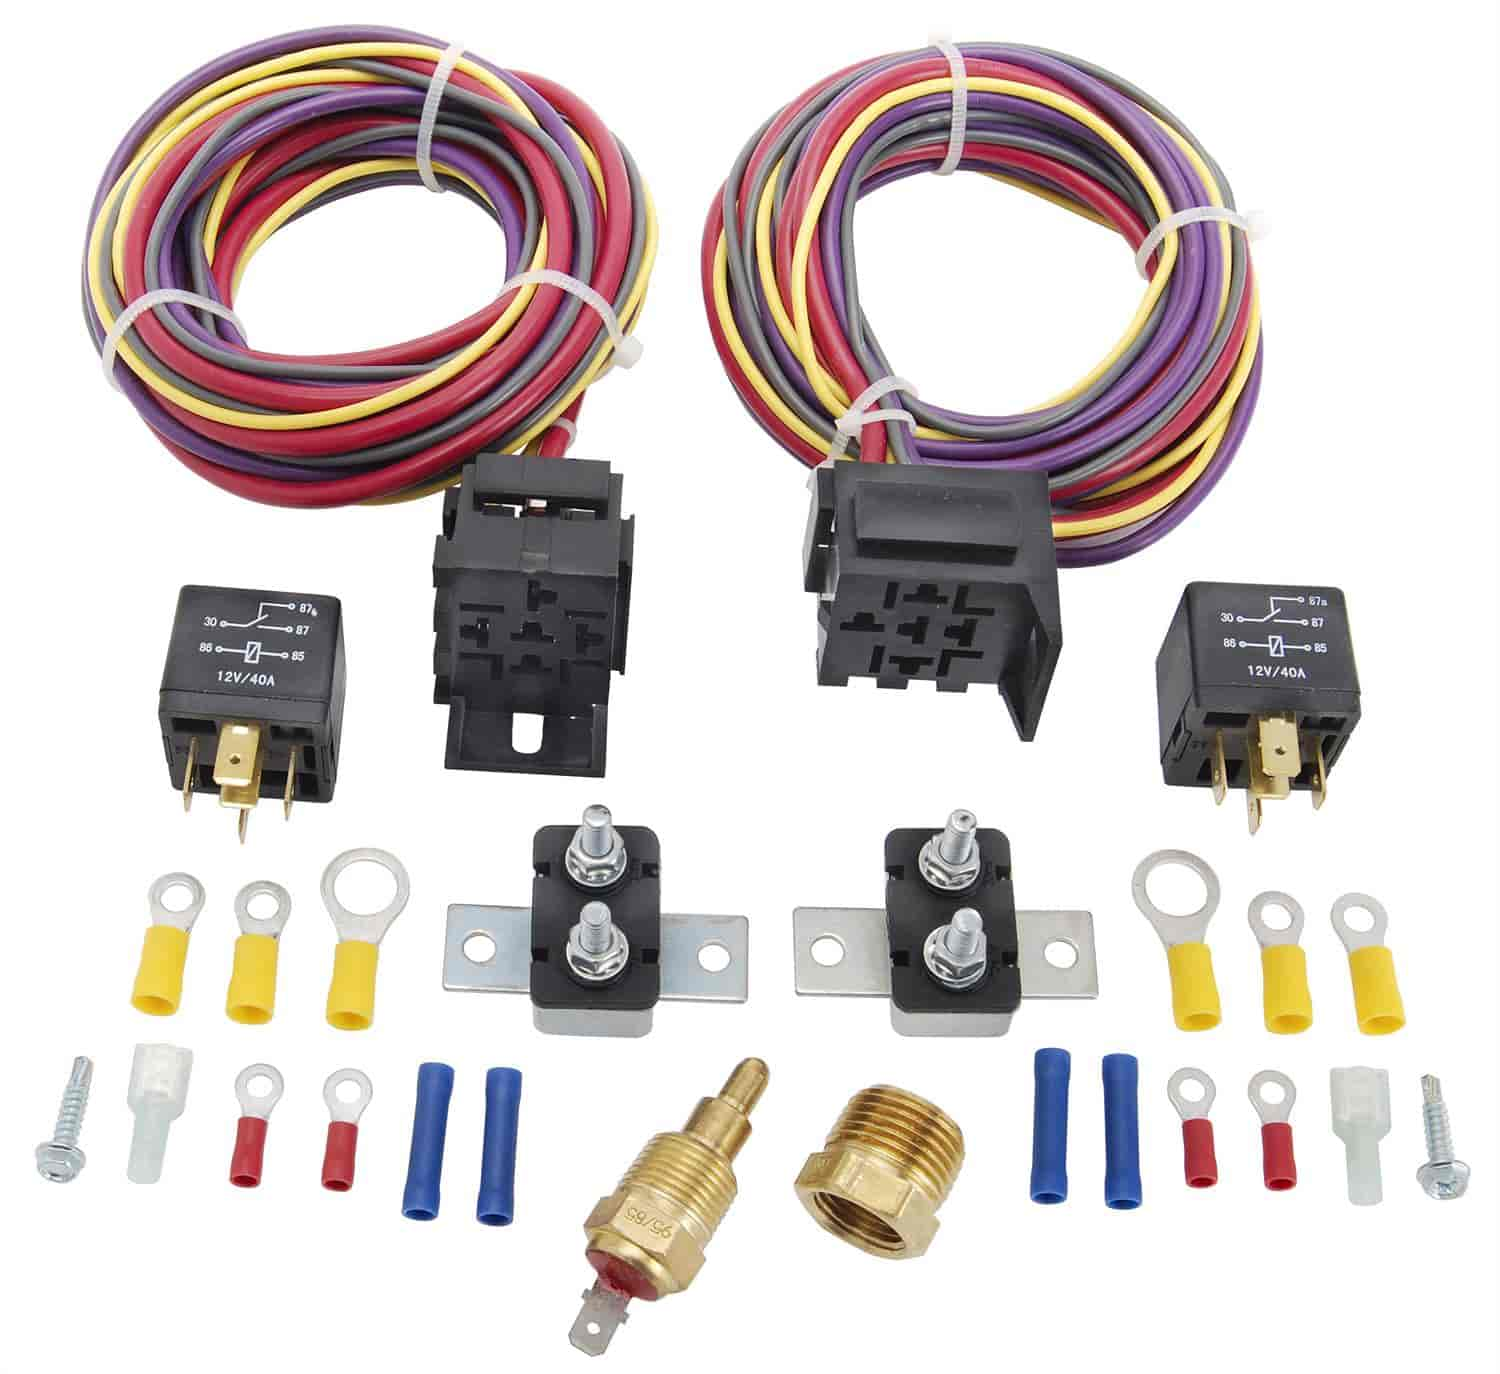 555 10571 jegs performance products 10571 dual fan wiring harness & relay VW Wiring Harness Kits at aneh.co